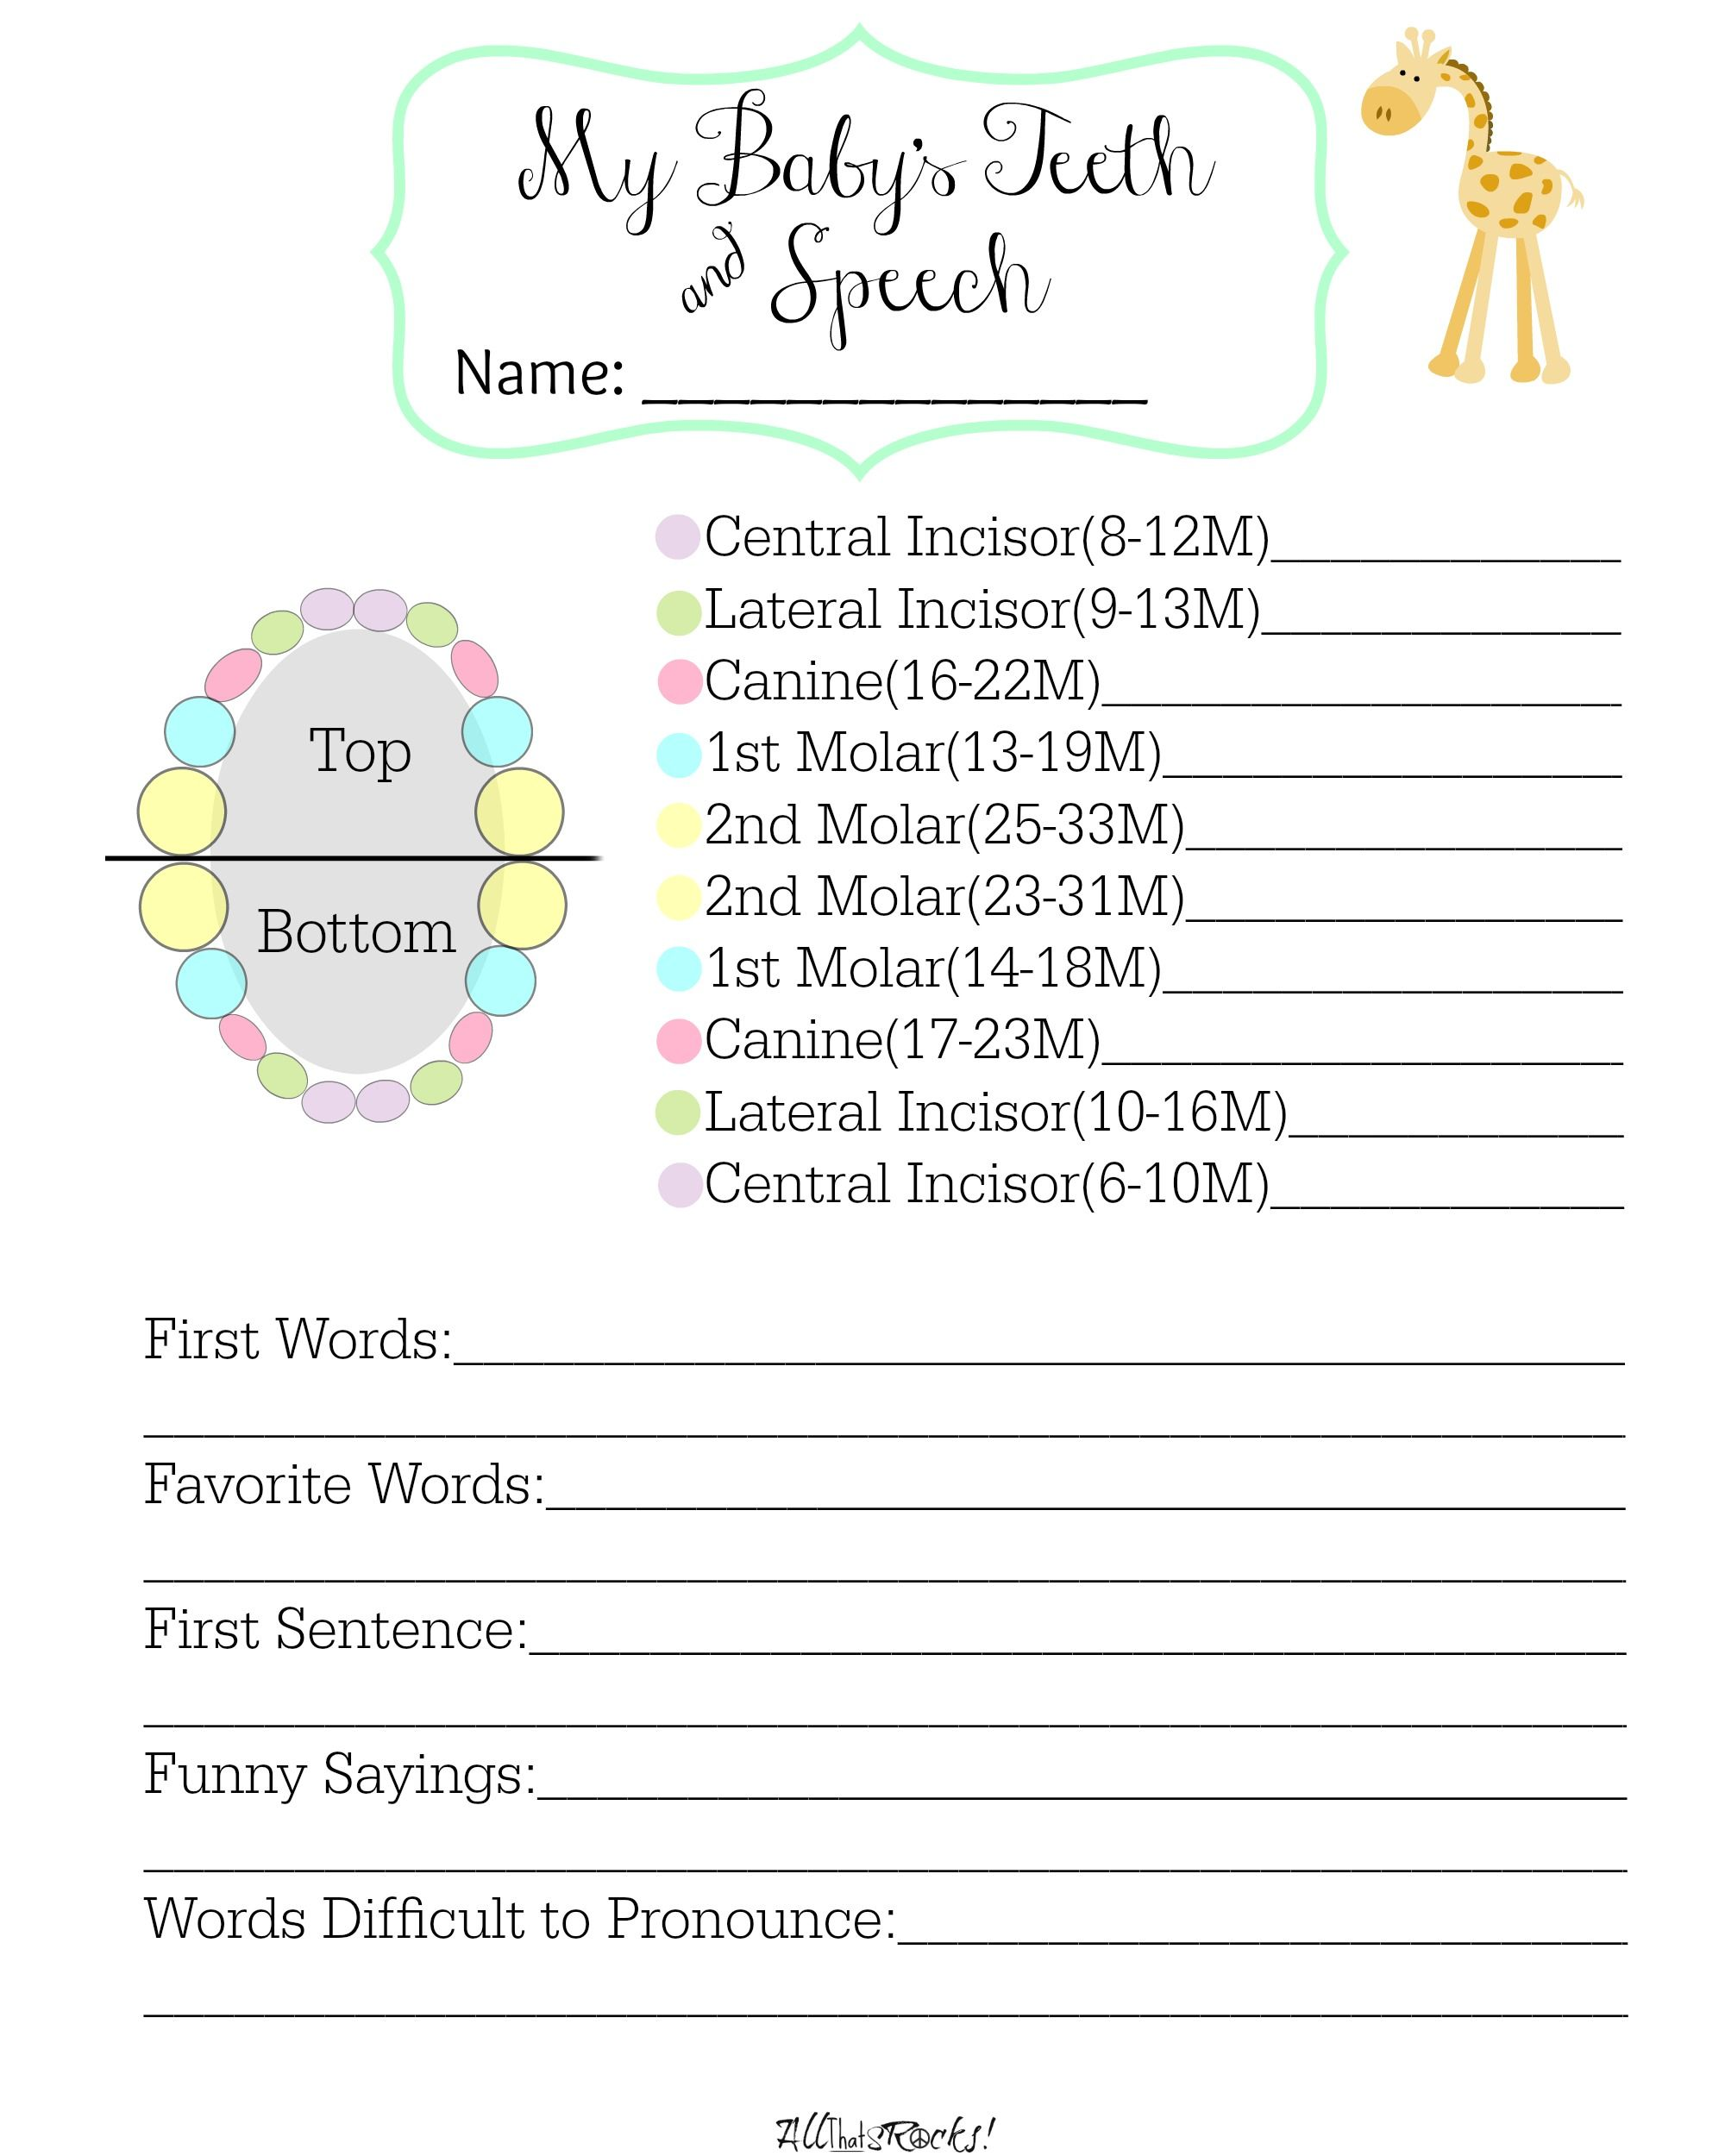 Track Baby's Teeth and Speech with this Free Printable ...